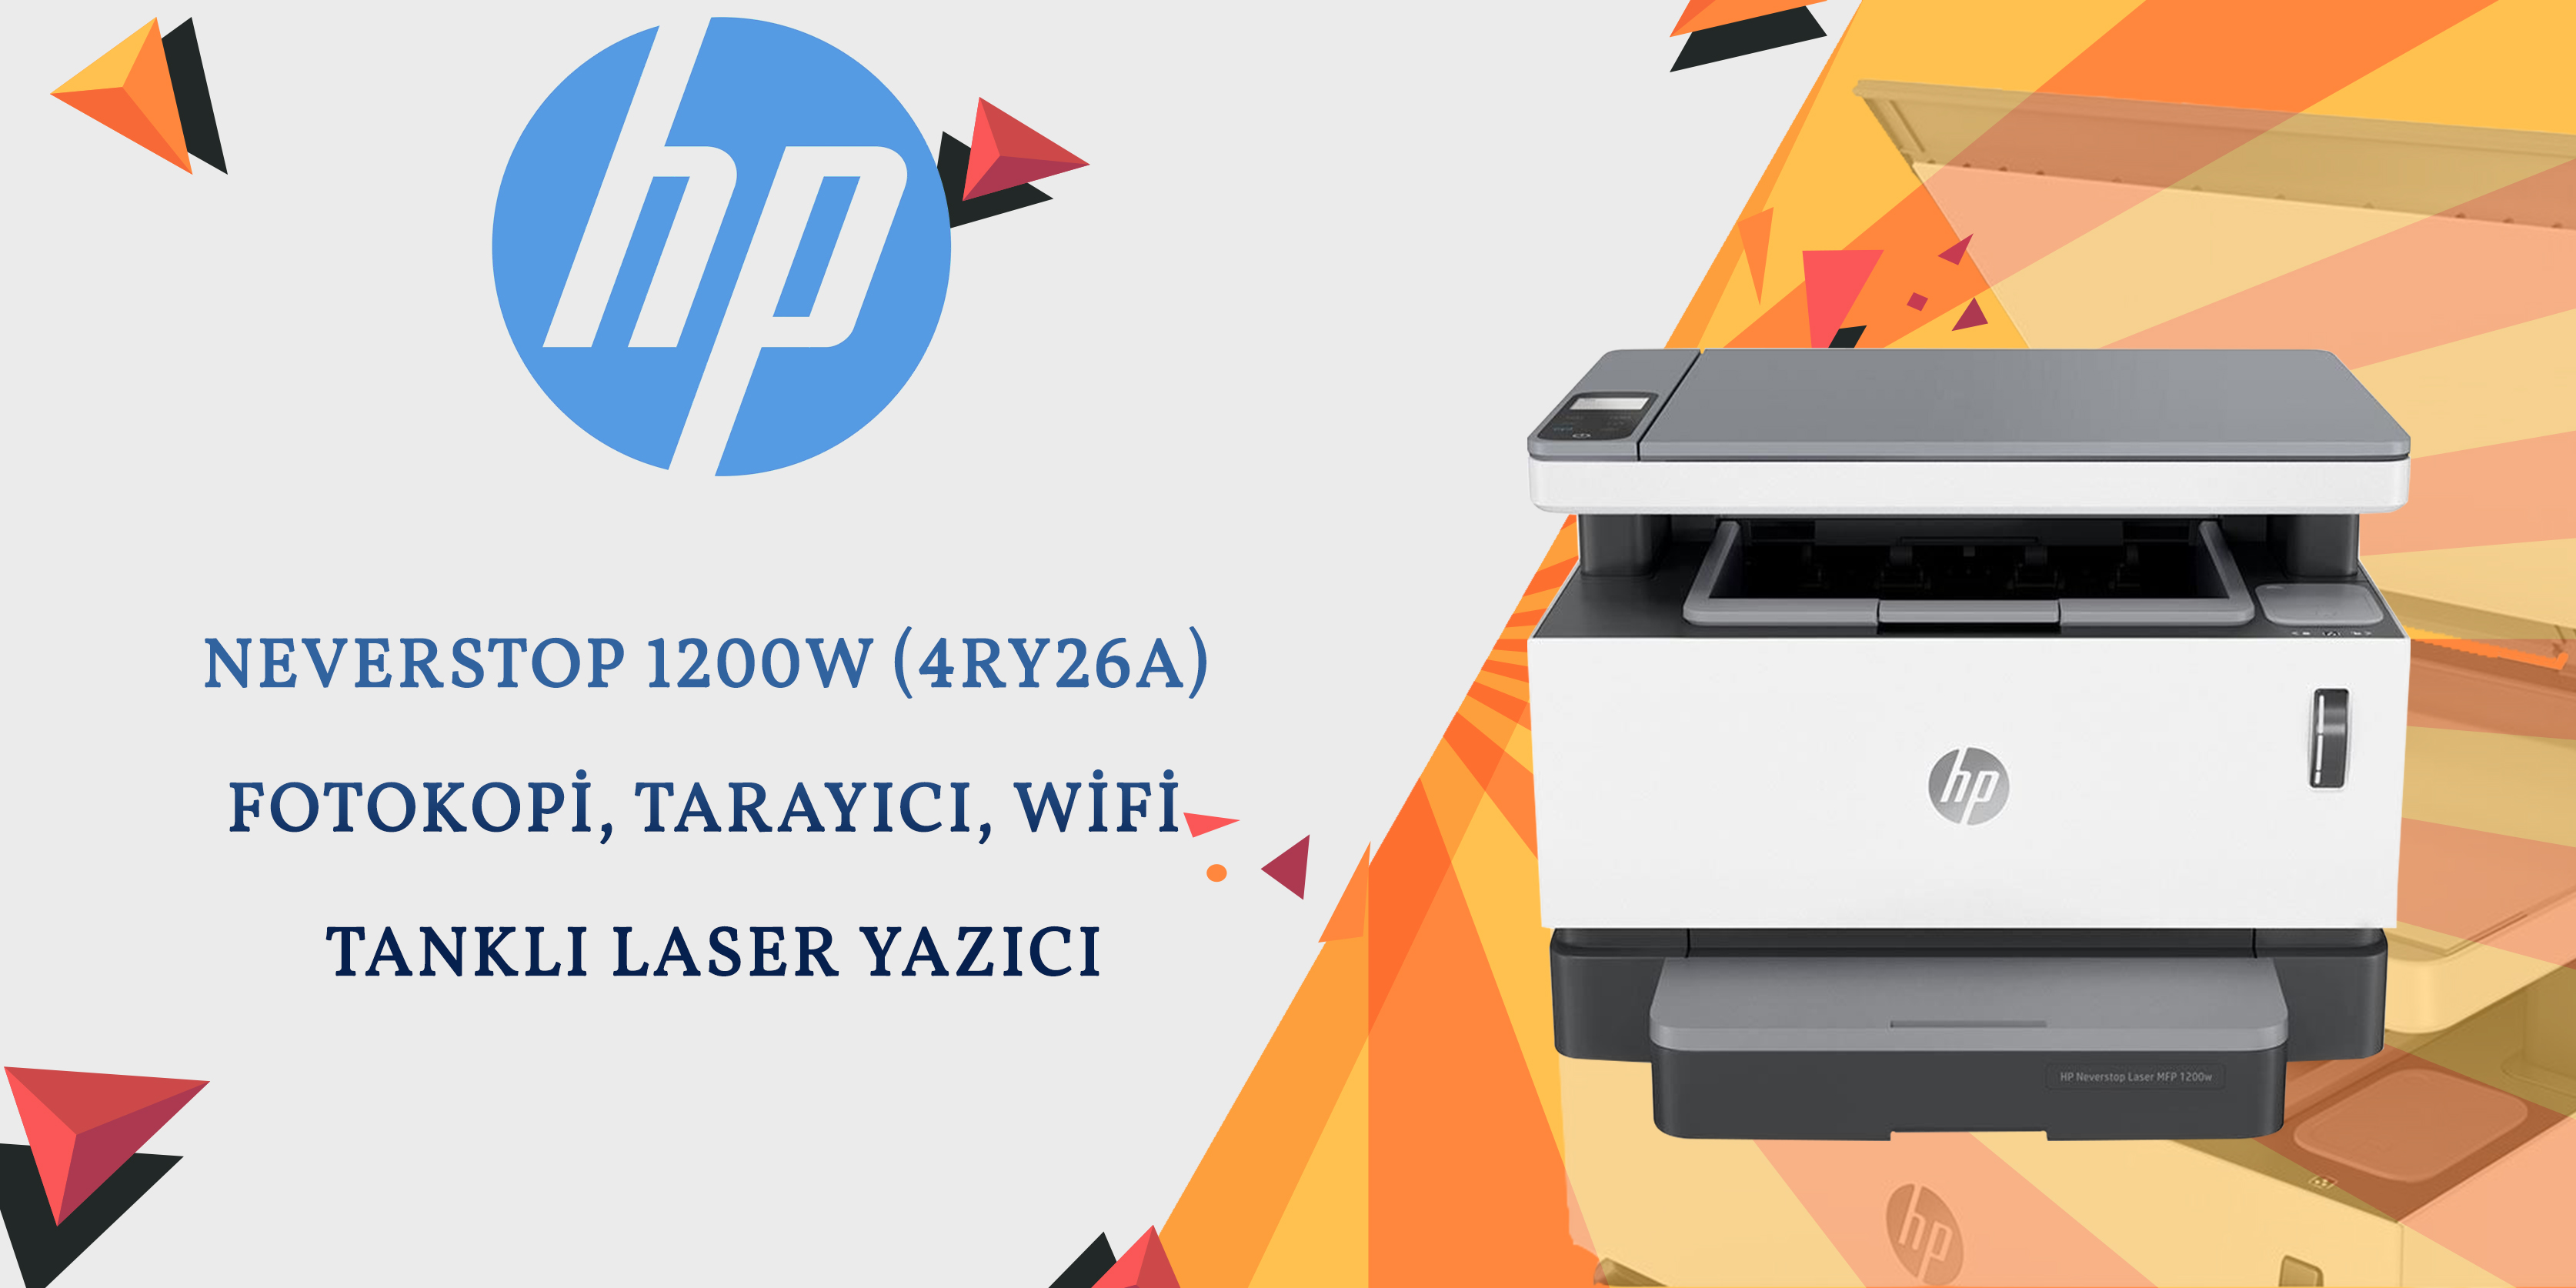 HP 4RY26A NEVERSTOP